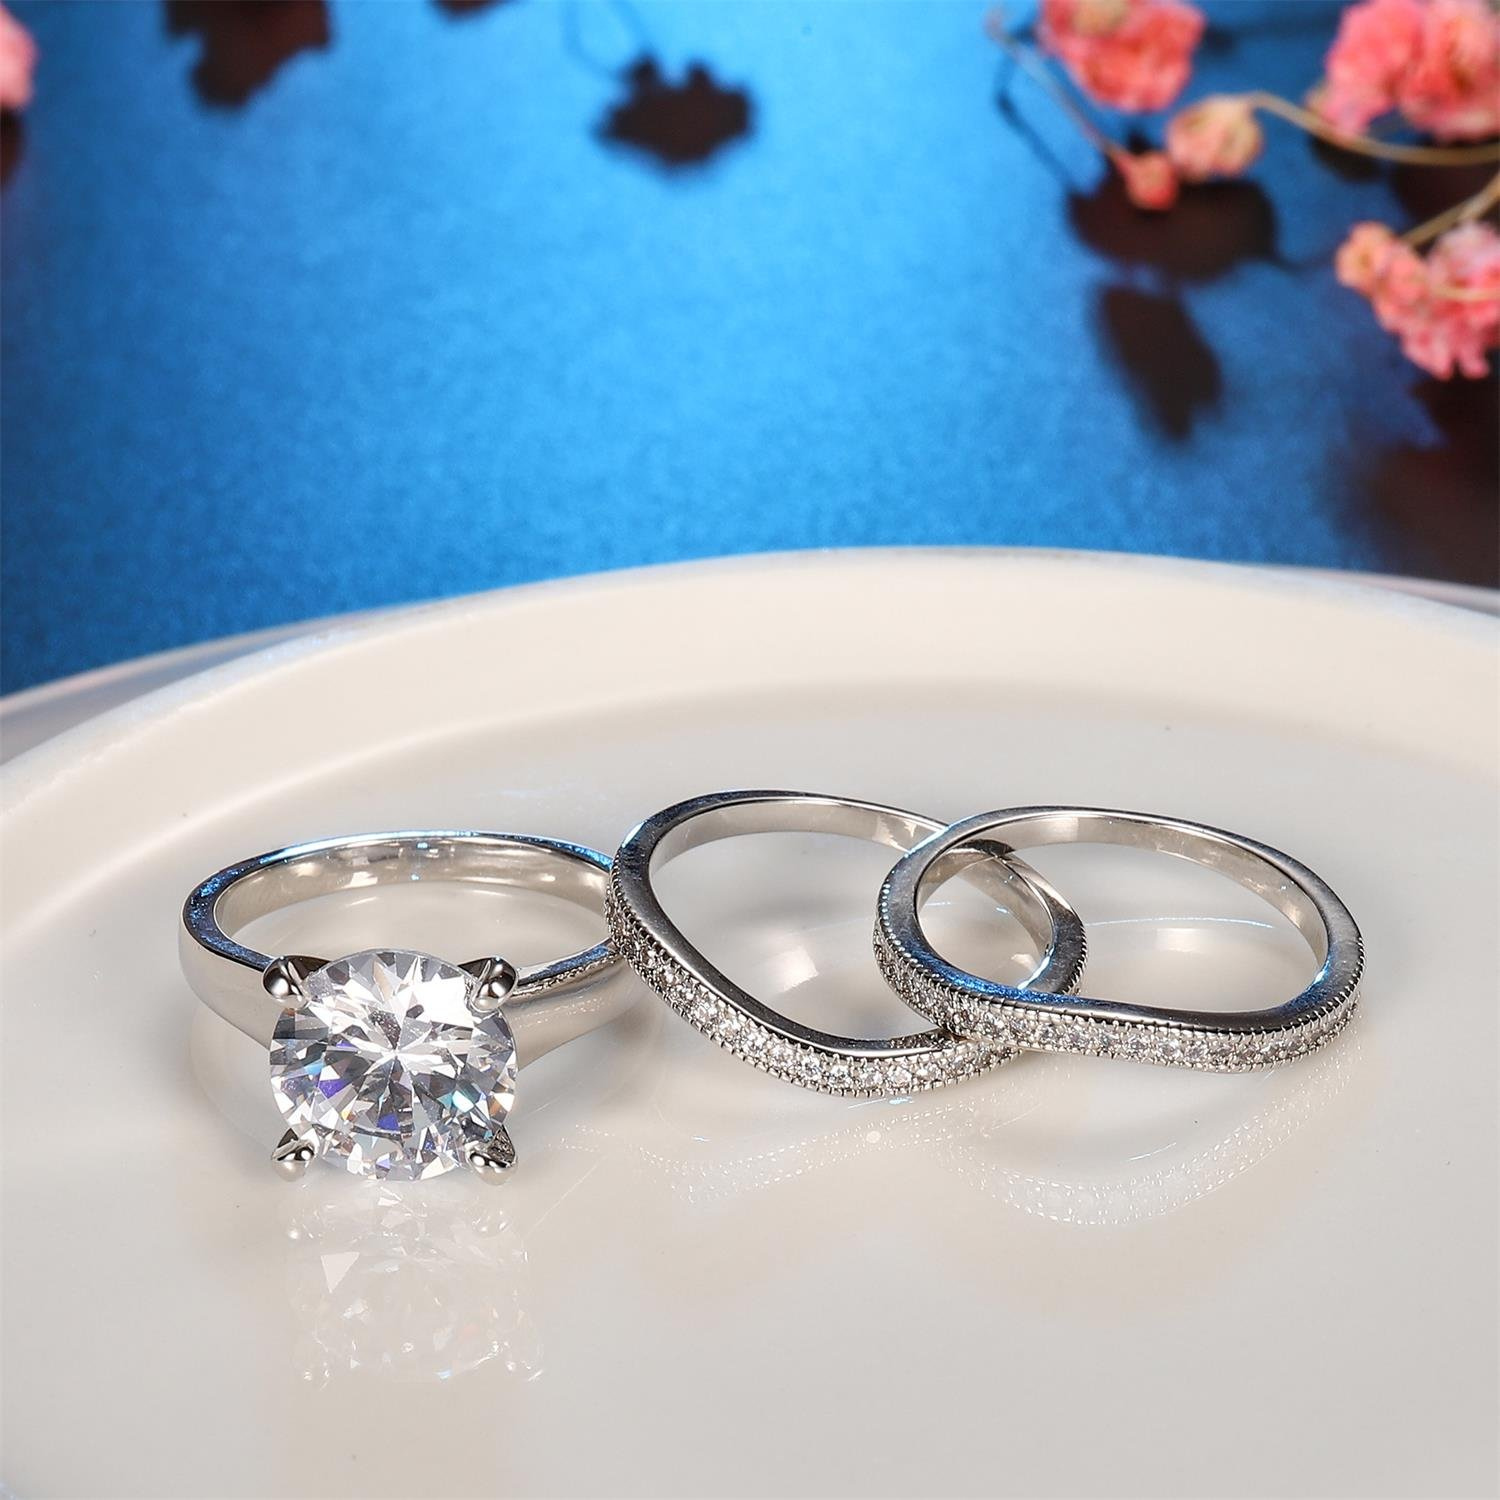 Platinum Plated Bridal Set - Round Cut Cubic Zirconia Rings Women Engagement Ring Set with Wedding Band by Hiyong (Image #5)